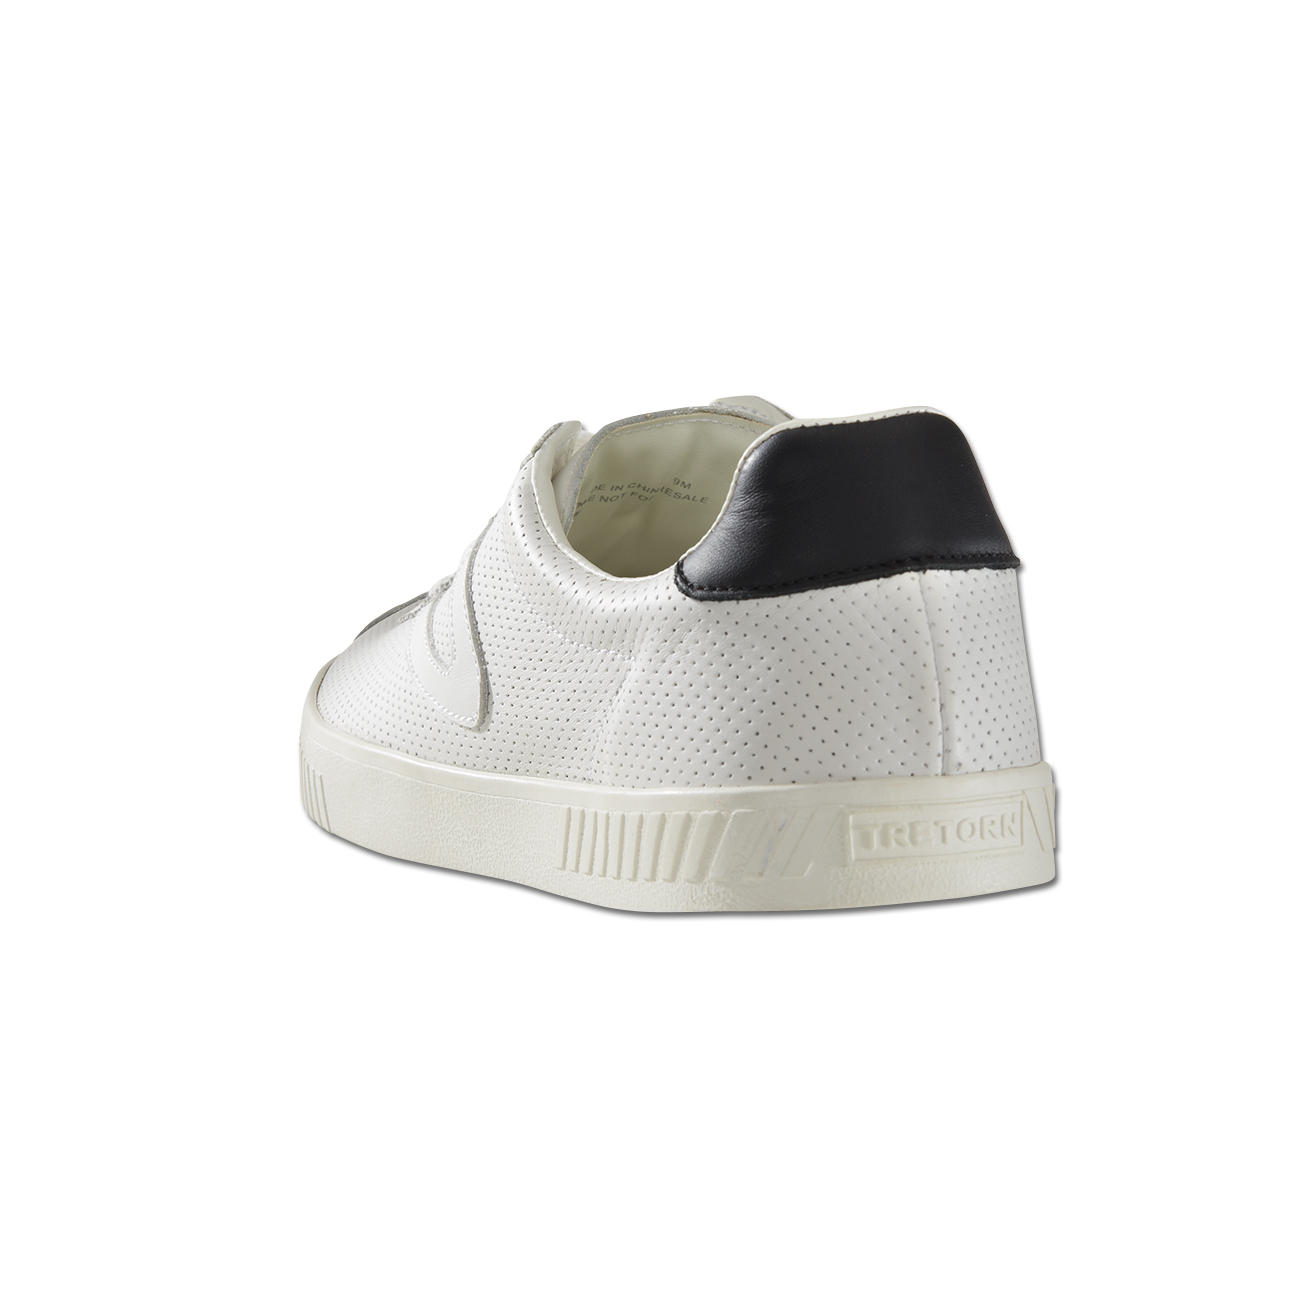 Chaussures Tretorn blanches Fashion femme